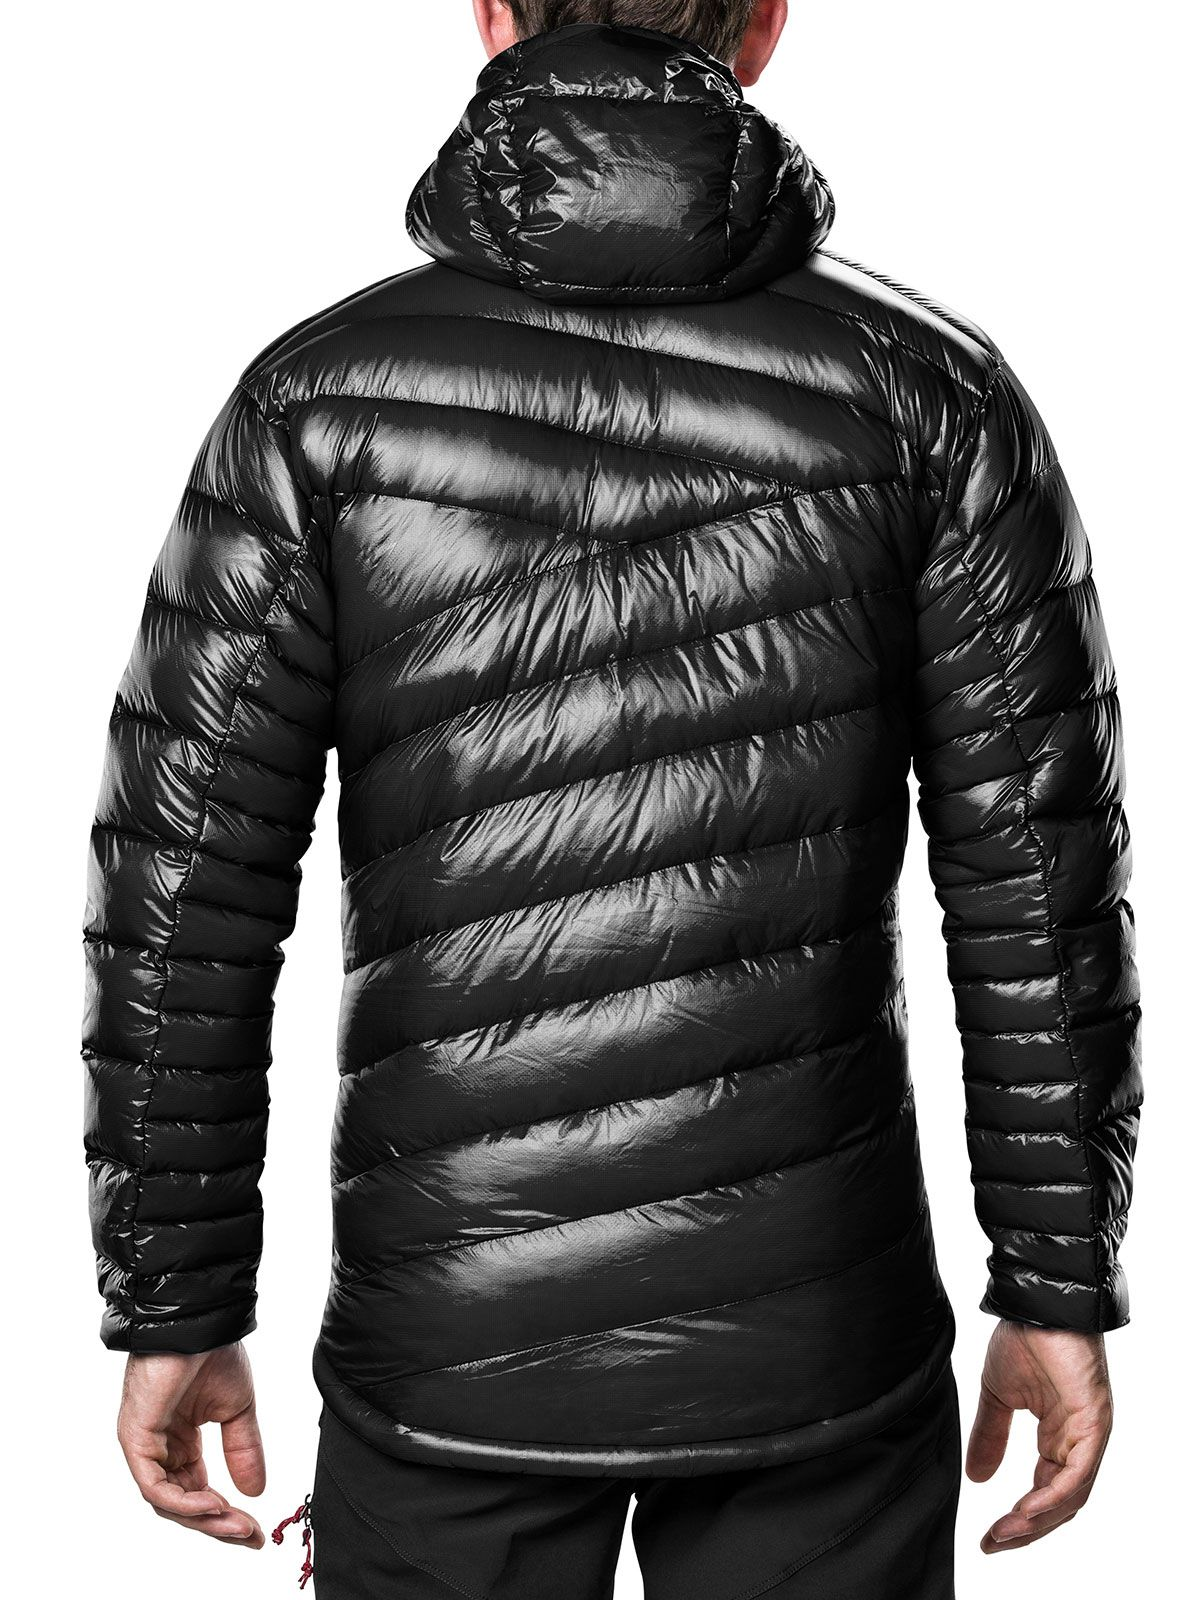 Men's Ramche Reflect Micro Down Jacket | Down Jacket Outfit